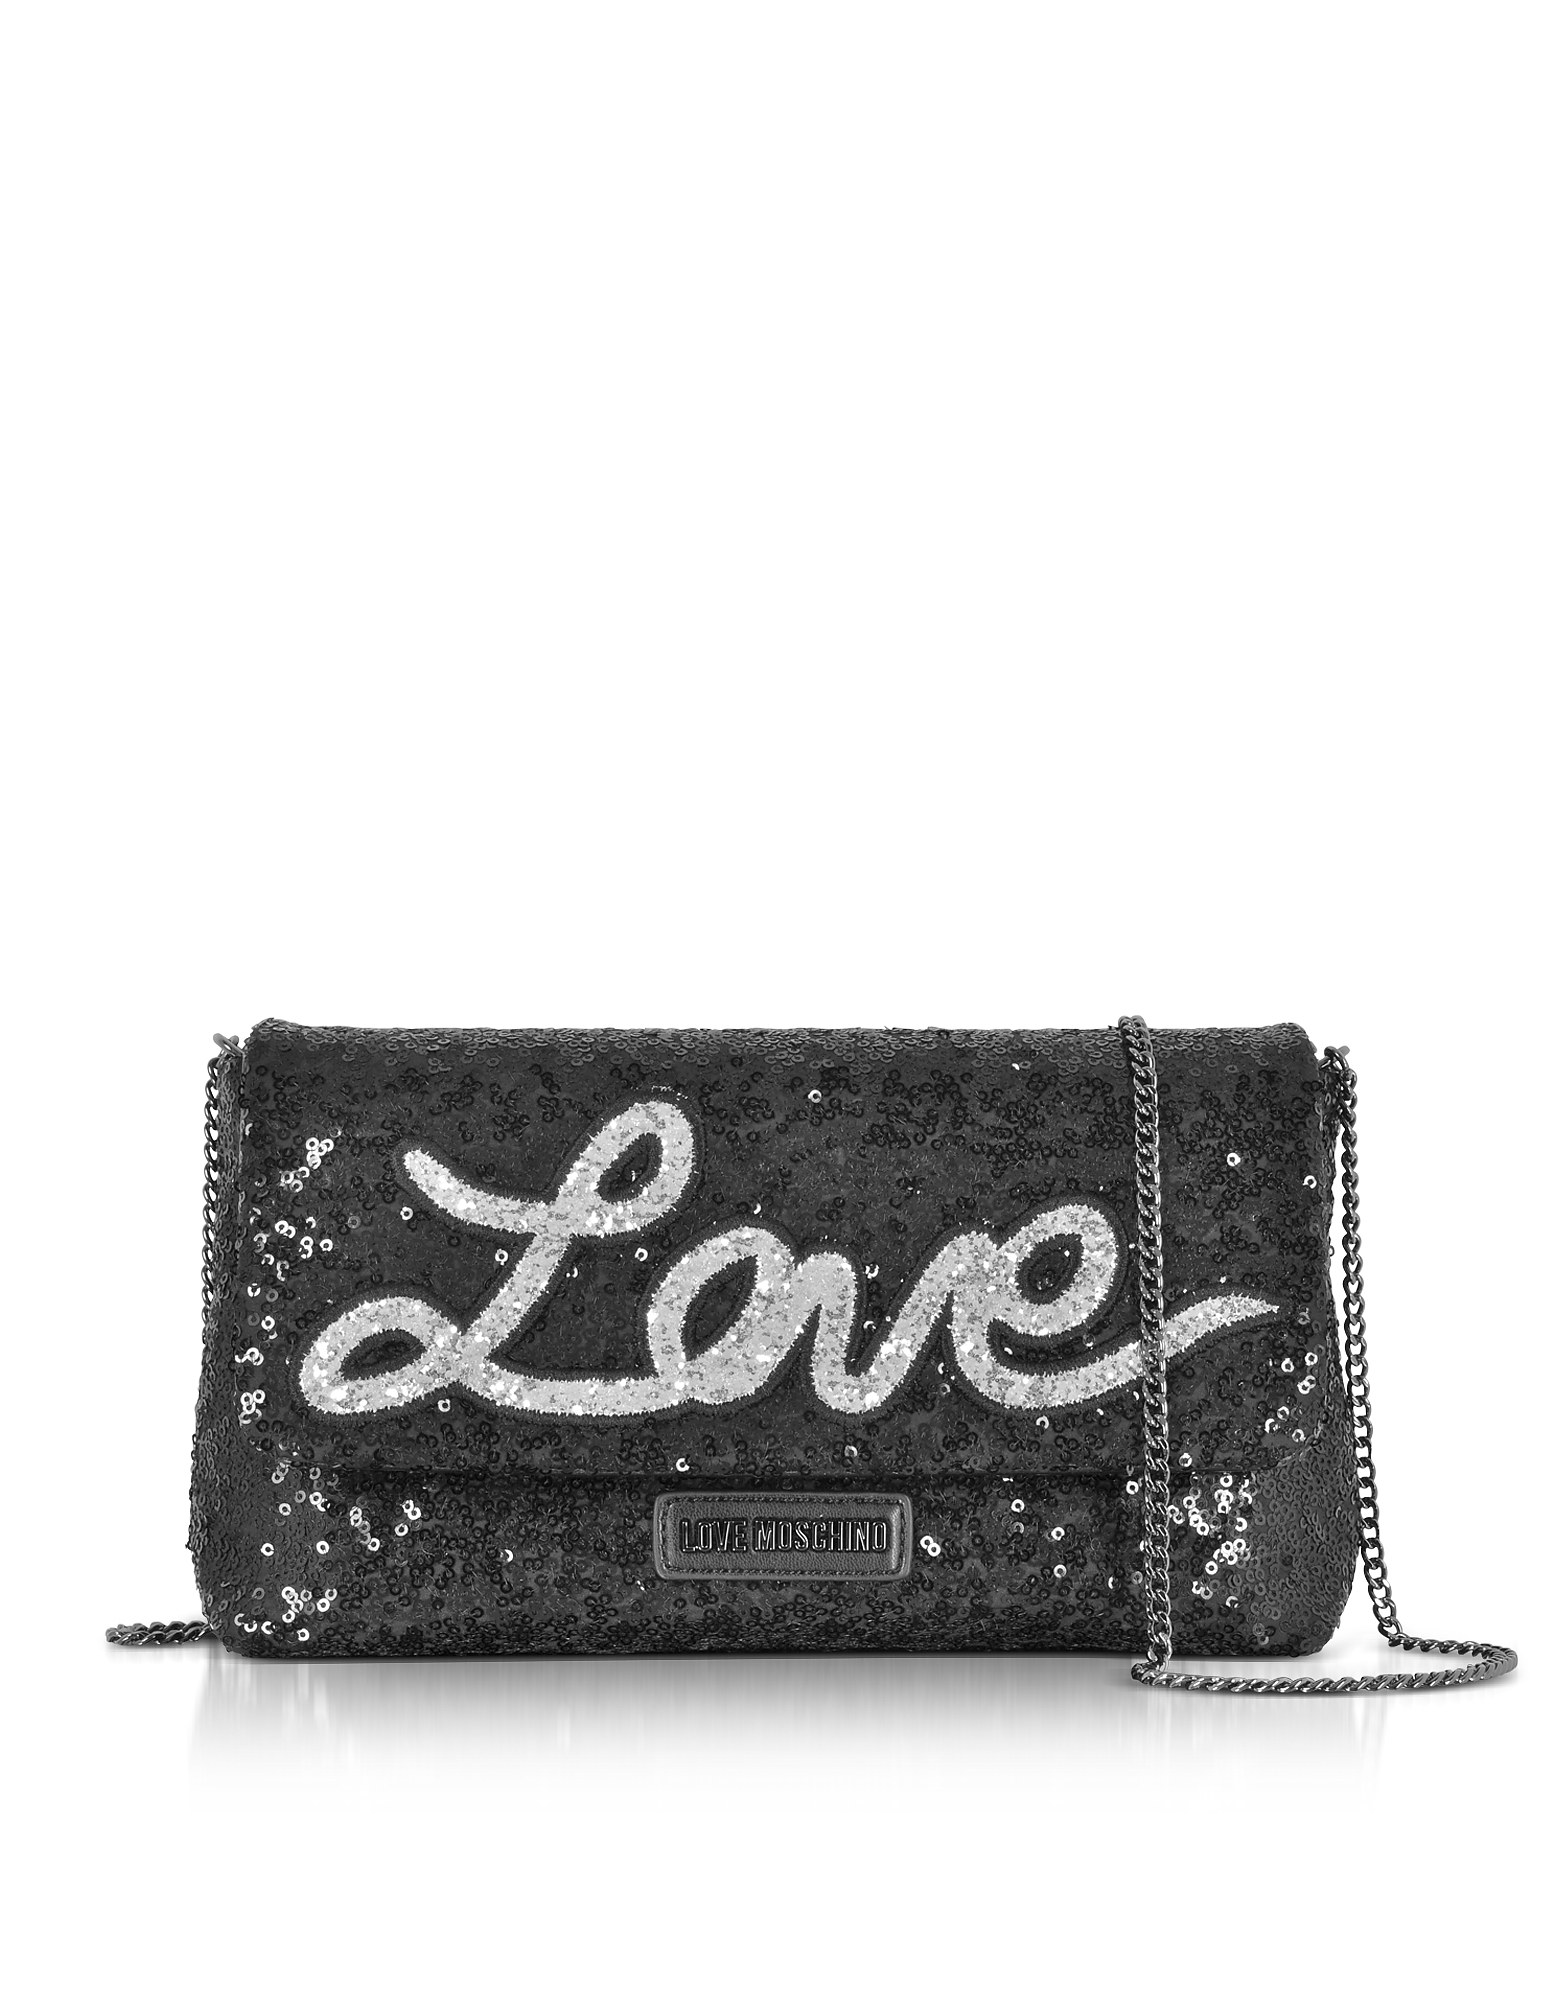 Love Moschino Handbags, Love Sequins Metallic Black Clutch w/Chain Strap